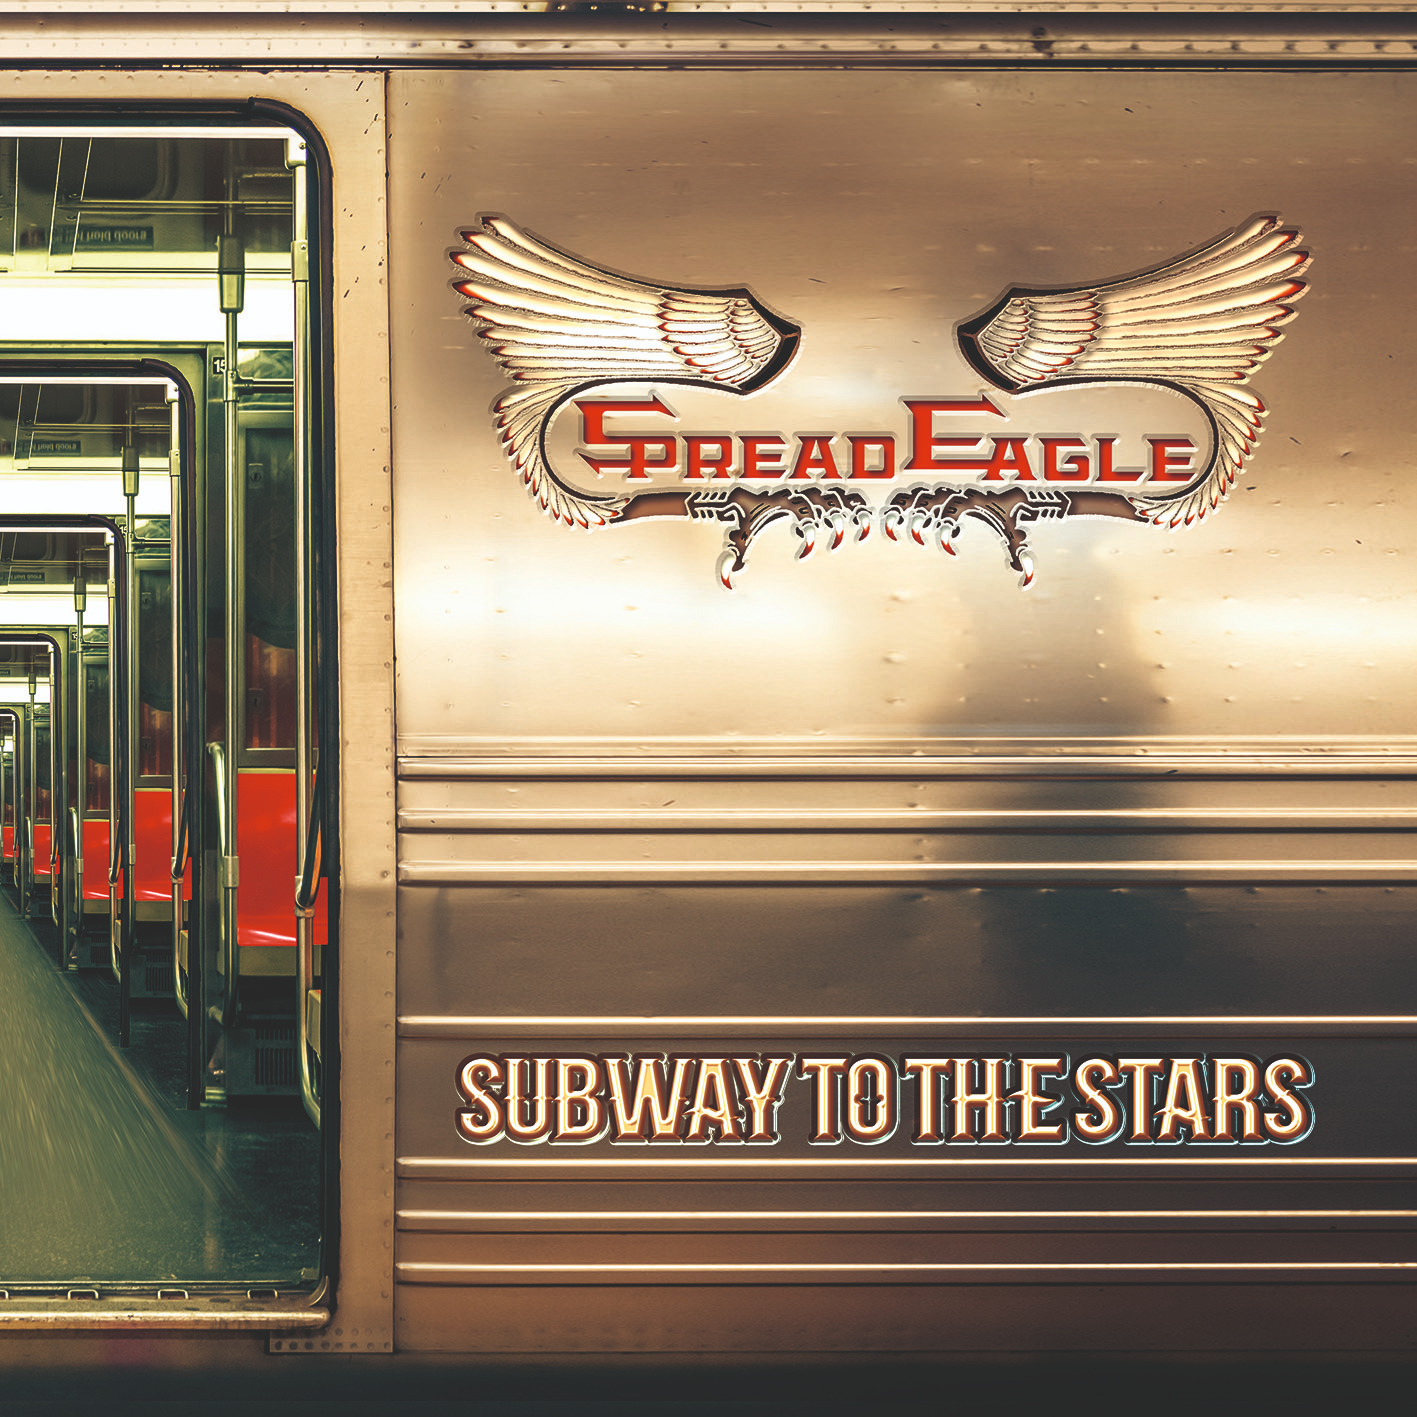 spread-eagle-subway-to-the-stars-auf-ein-neues-album-review